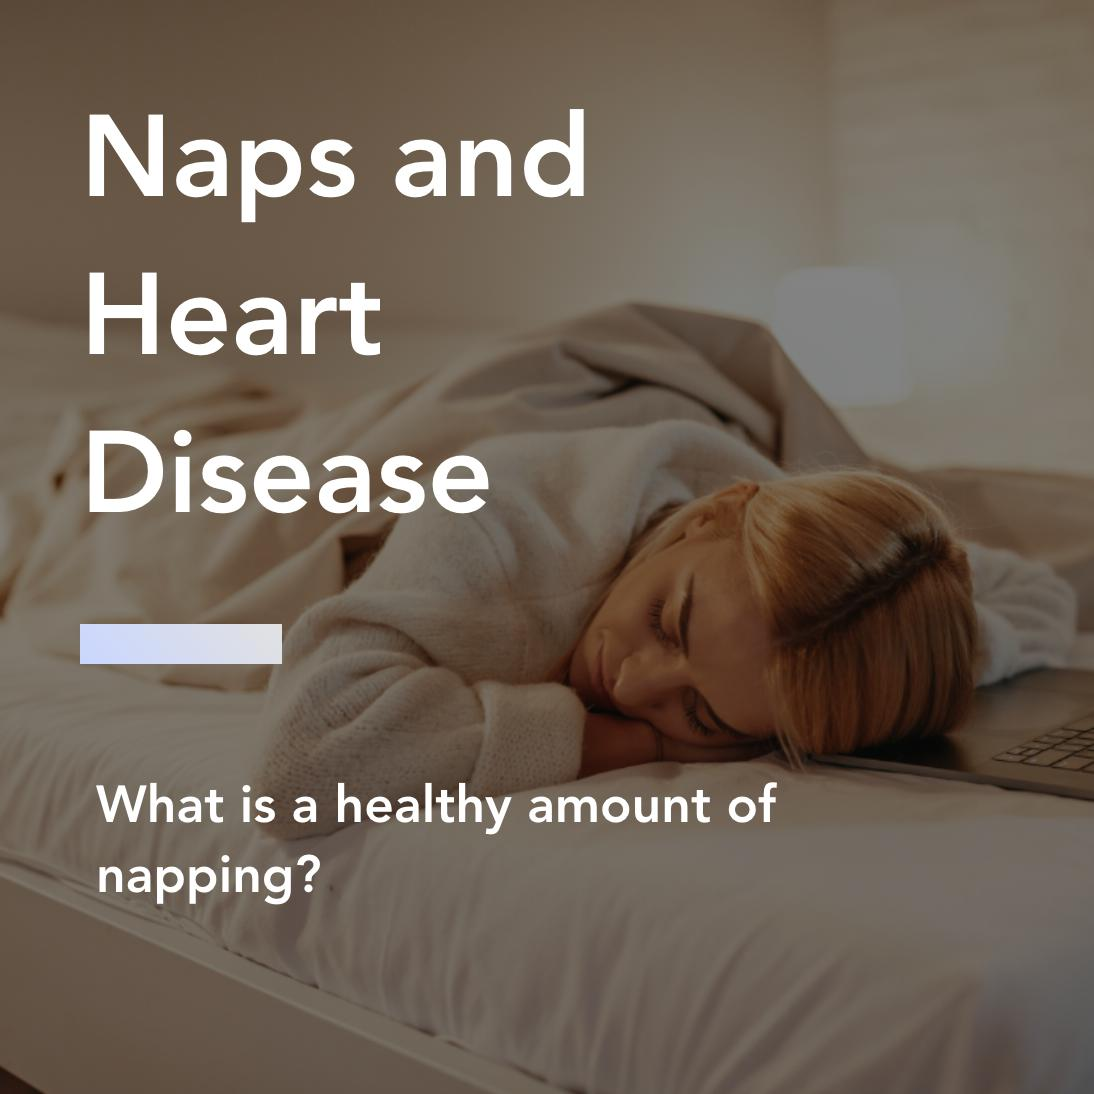 naps and heart disease title